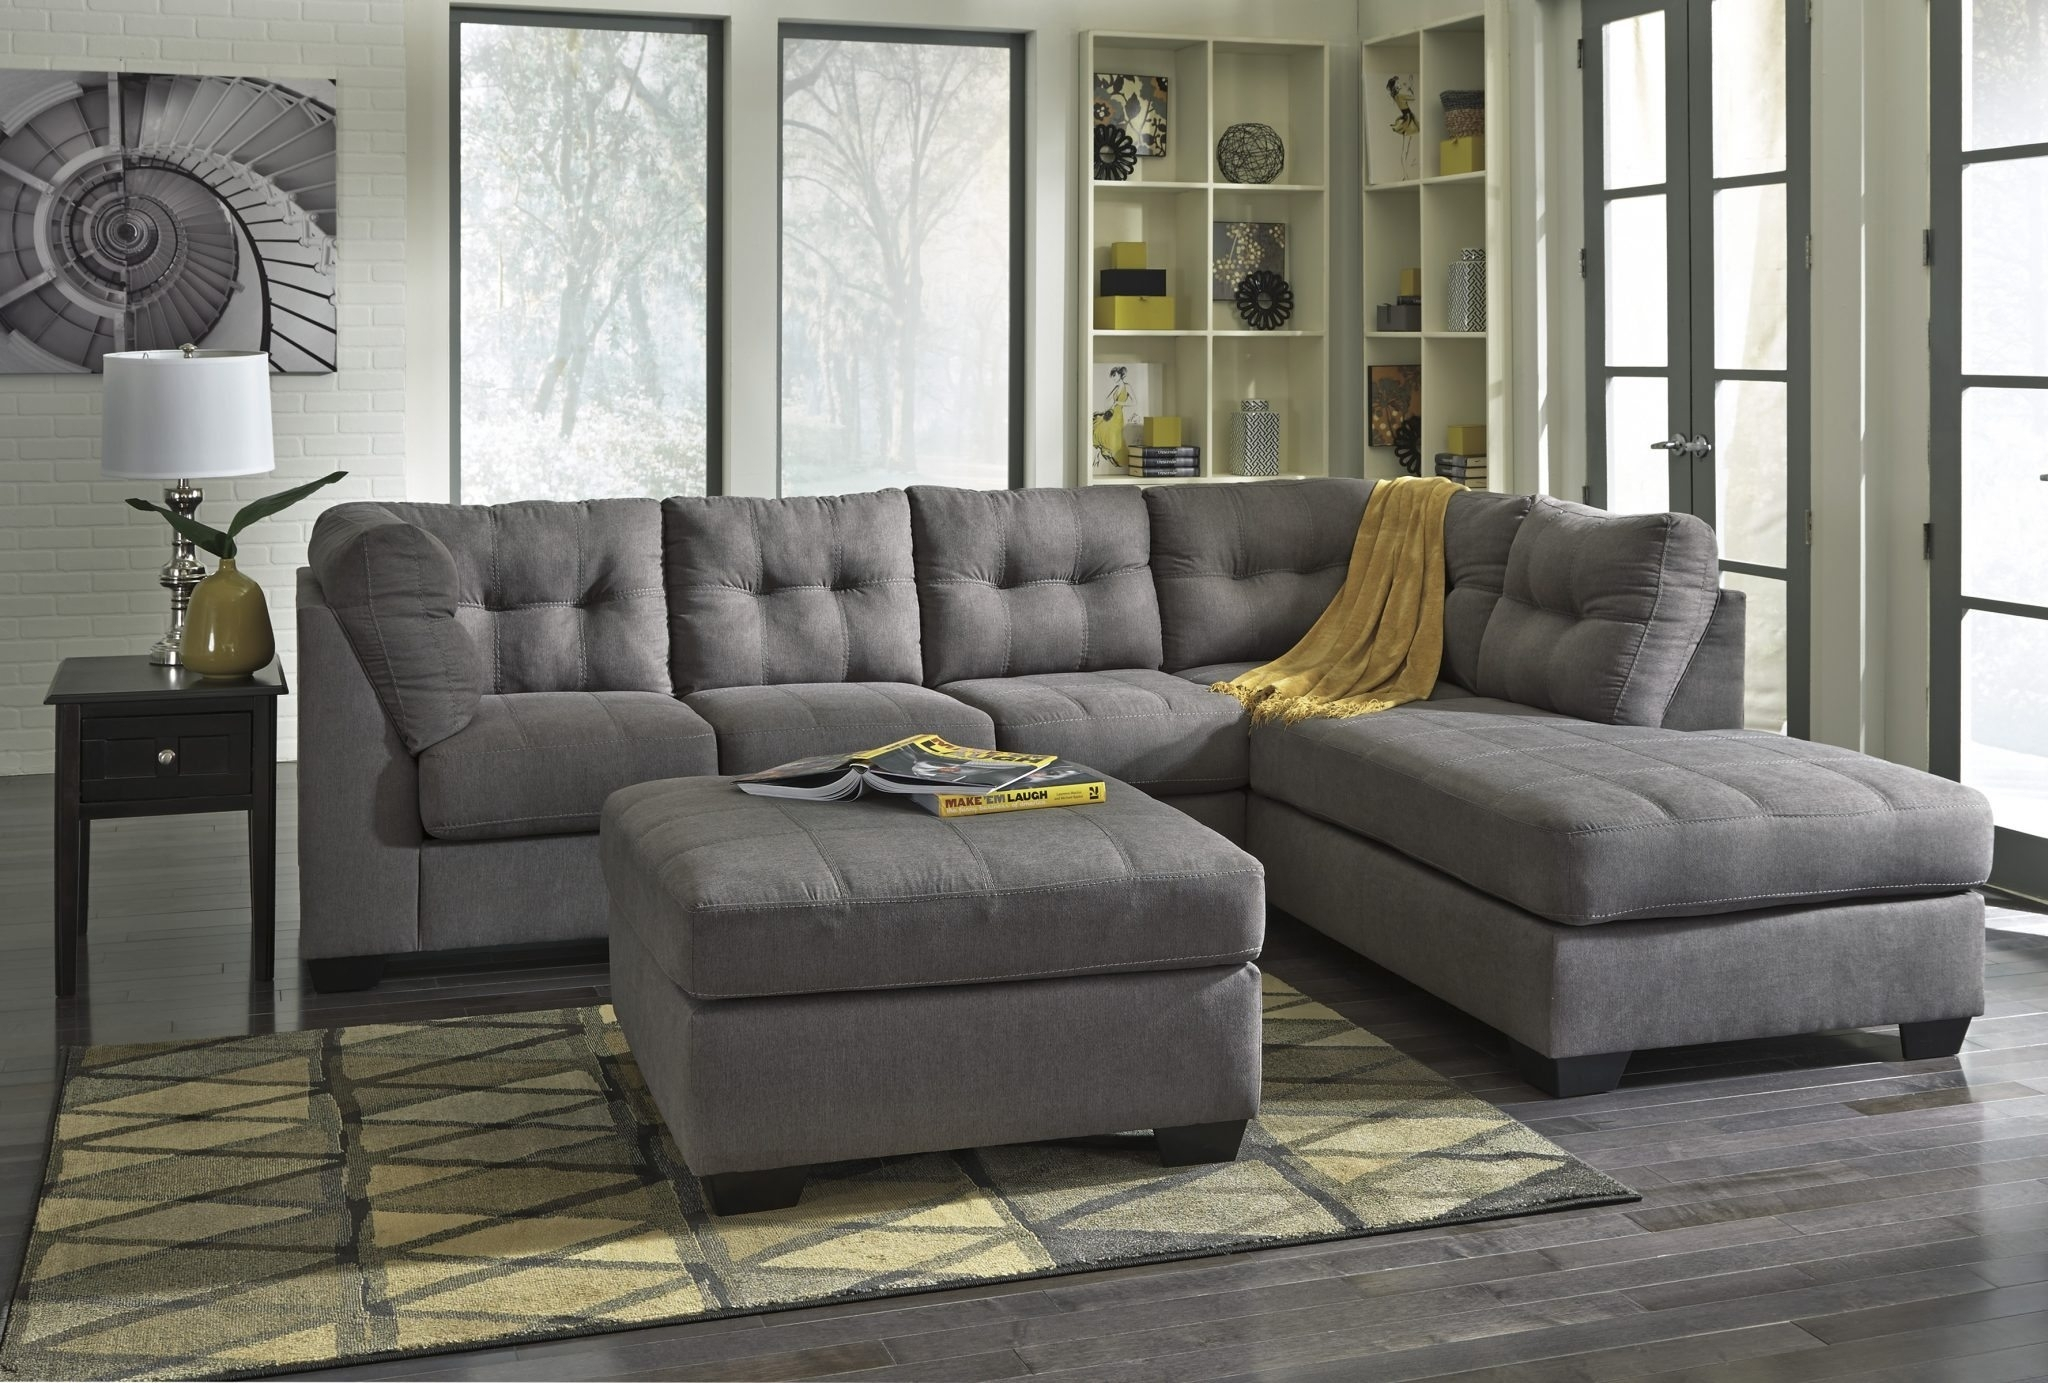 Ashley 452 Maier Sectional | Best Furniture Mentor Oh: Furniture for Meyer 3 Piece Sectionals With Laf Chaise (Image 2 of 30)